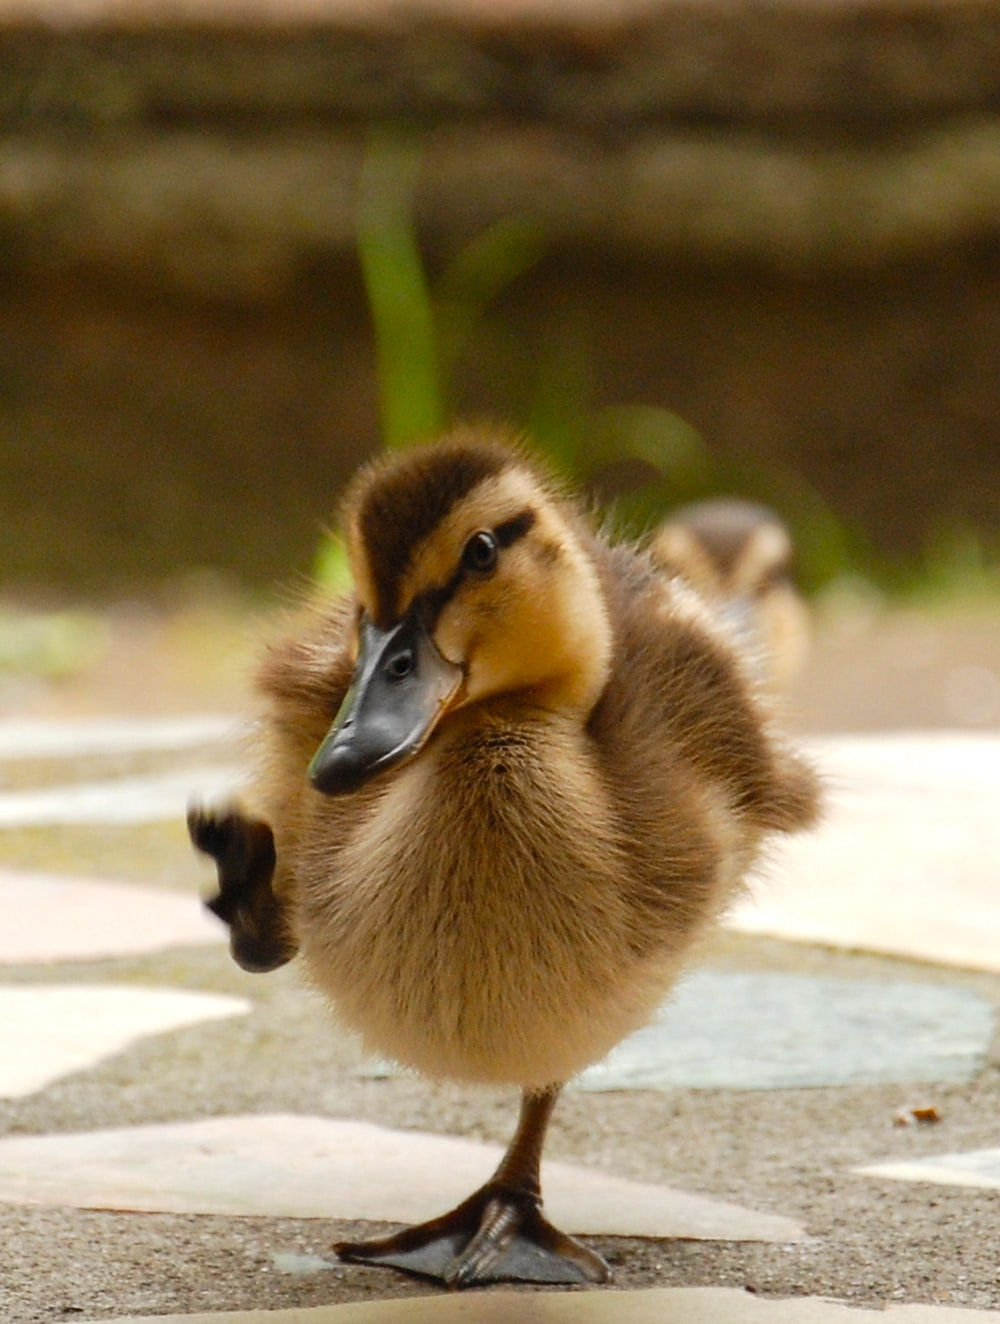 yellow and brown duckling